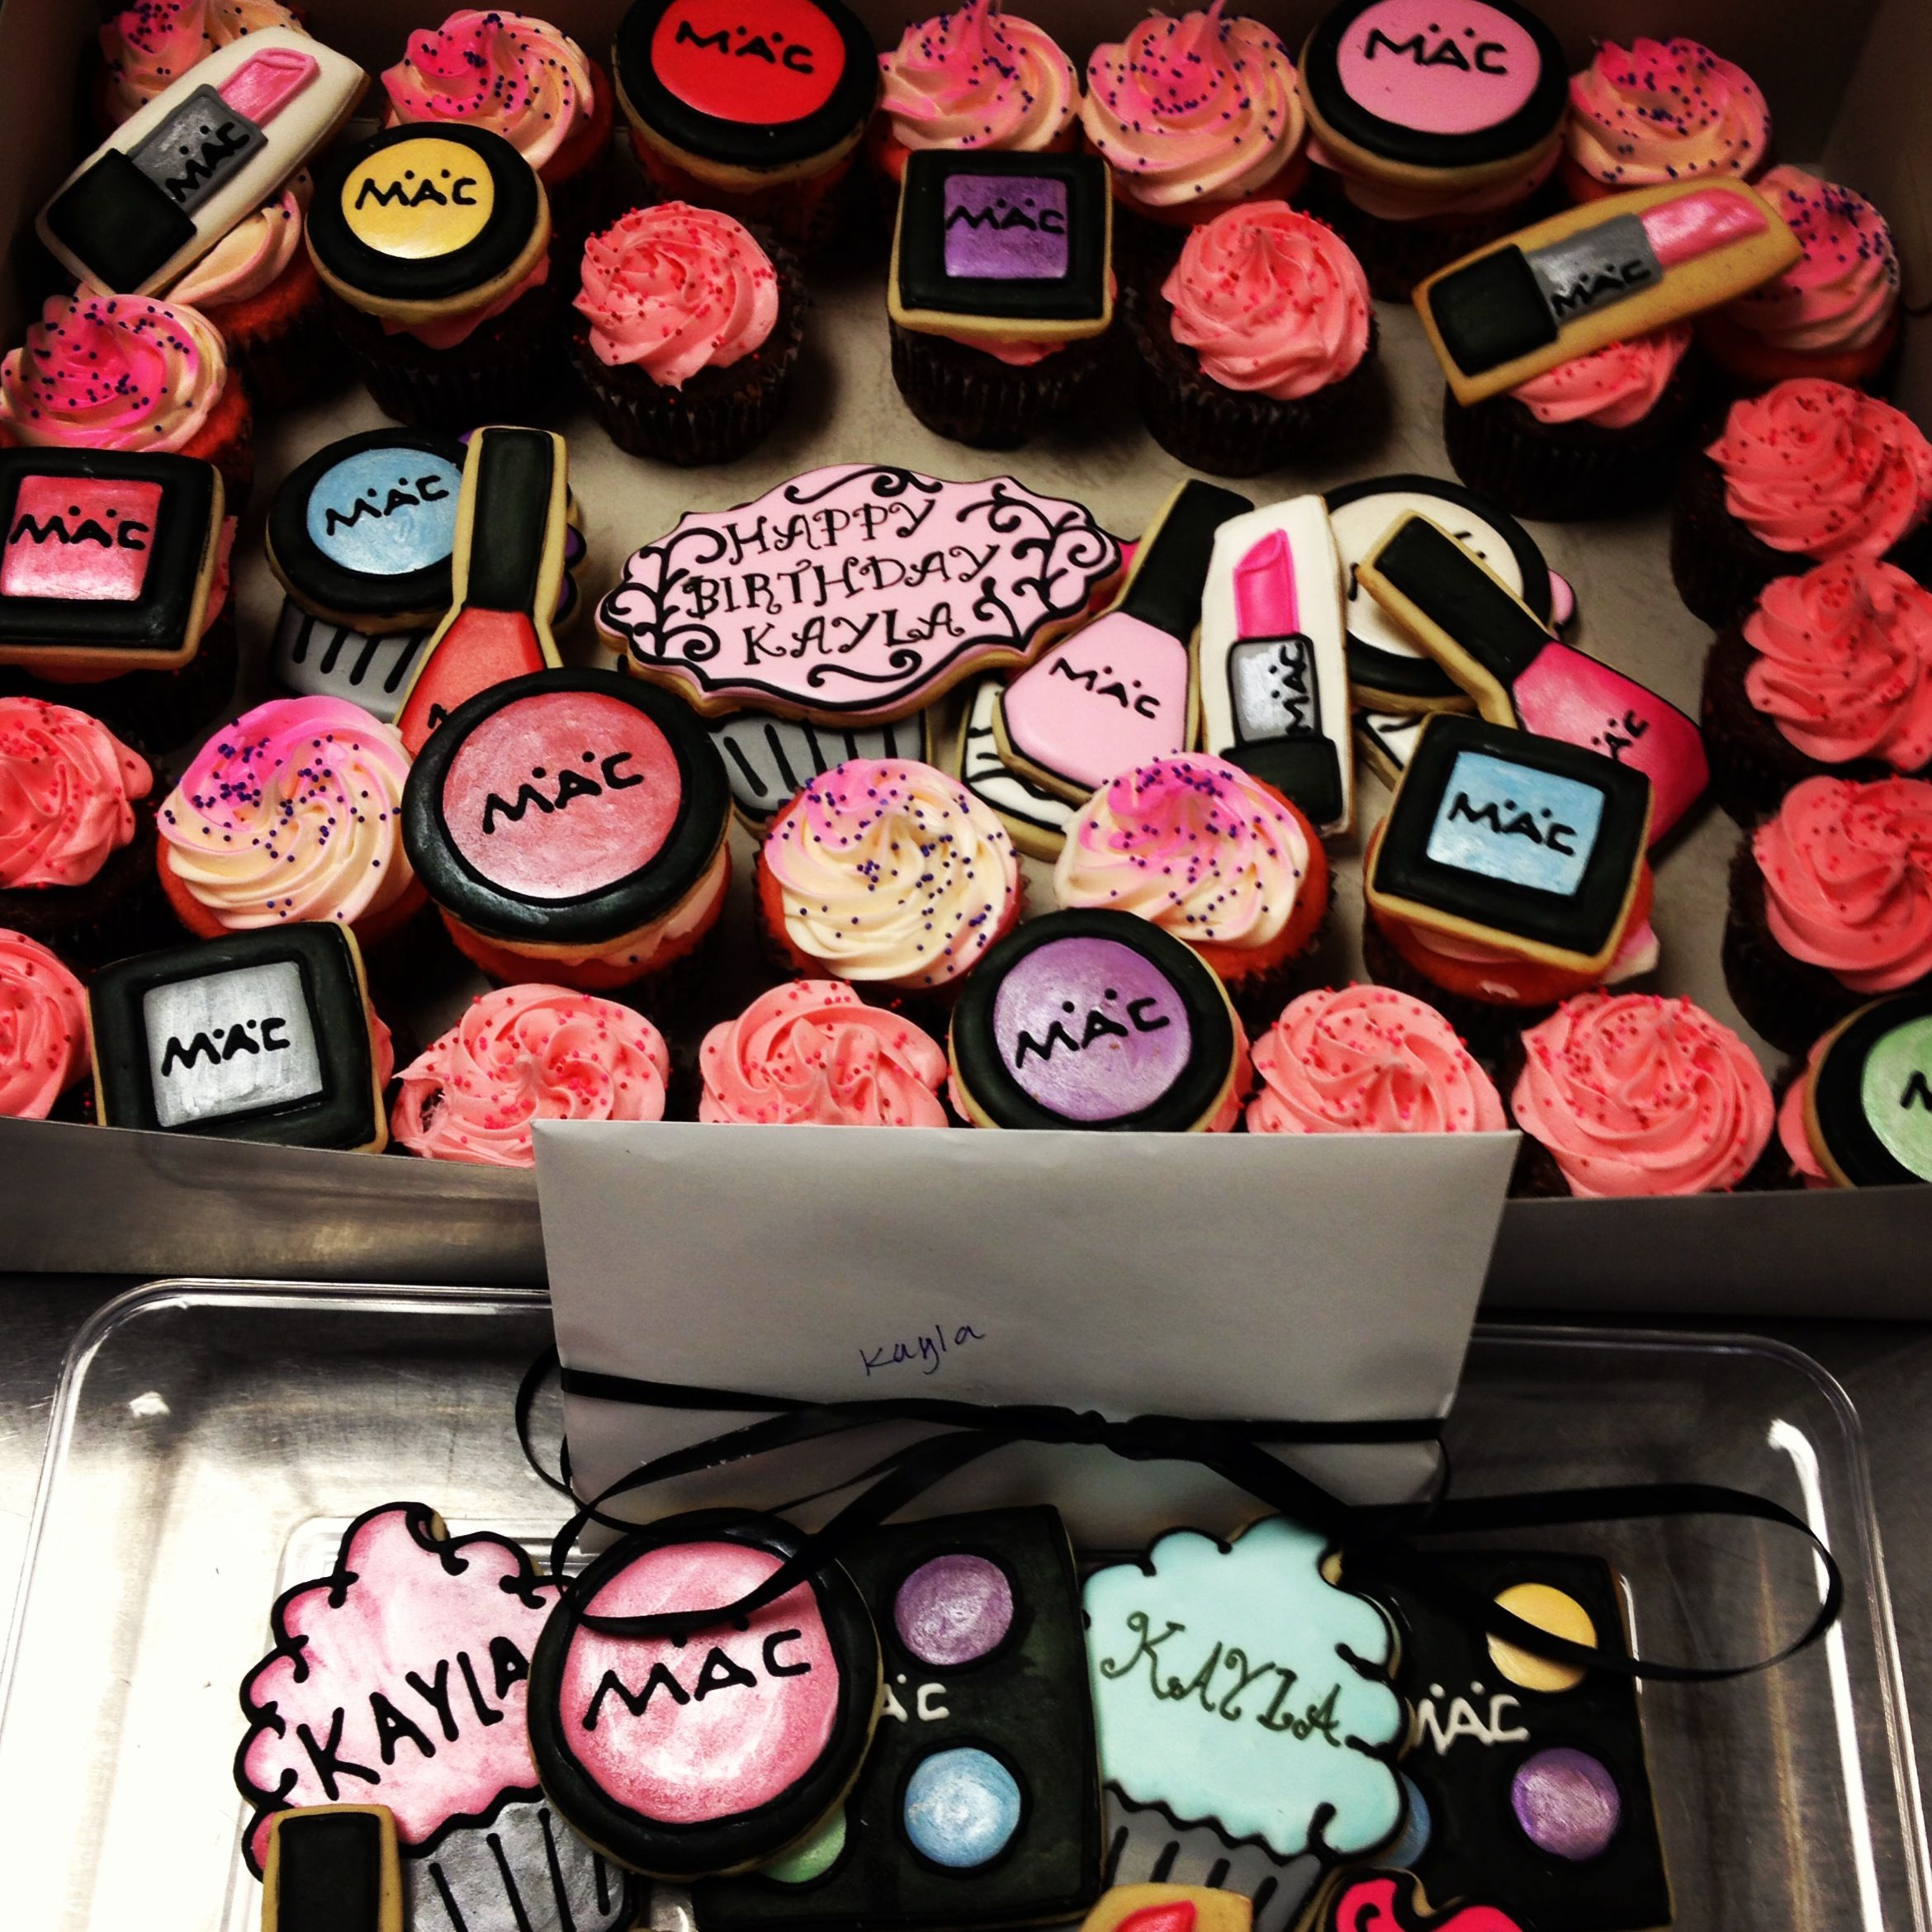 Mac cupcakes and cookies! Fashion cupcakes